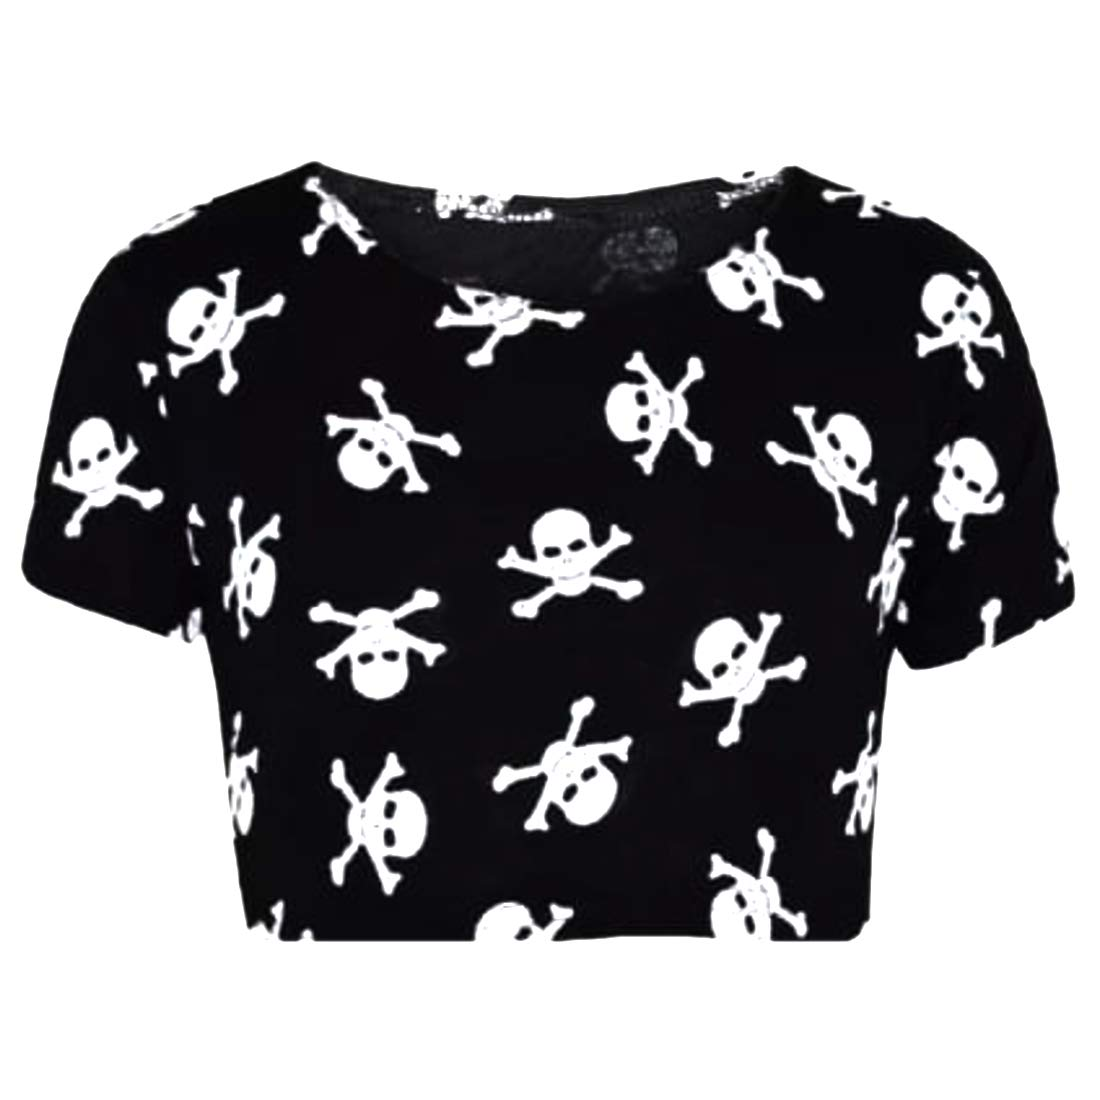 Aelstores Girls Halloween Costume Skull and Bones Print Cropped T-Shirt Leggings Set Swing Dress Jumpsuit Age Size 5-13 Years